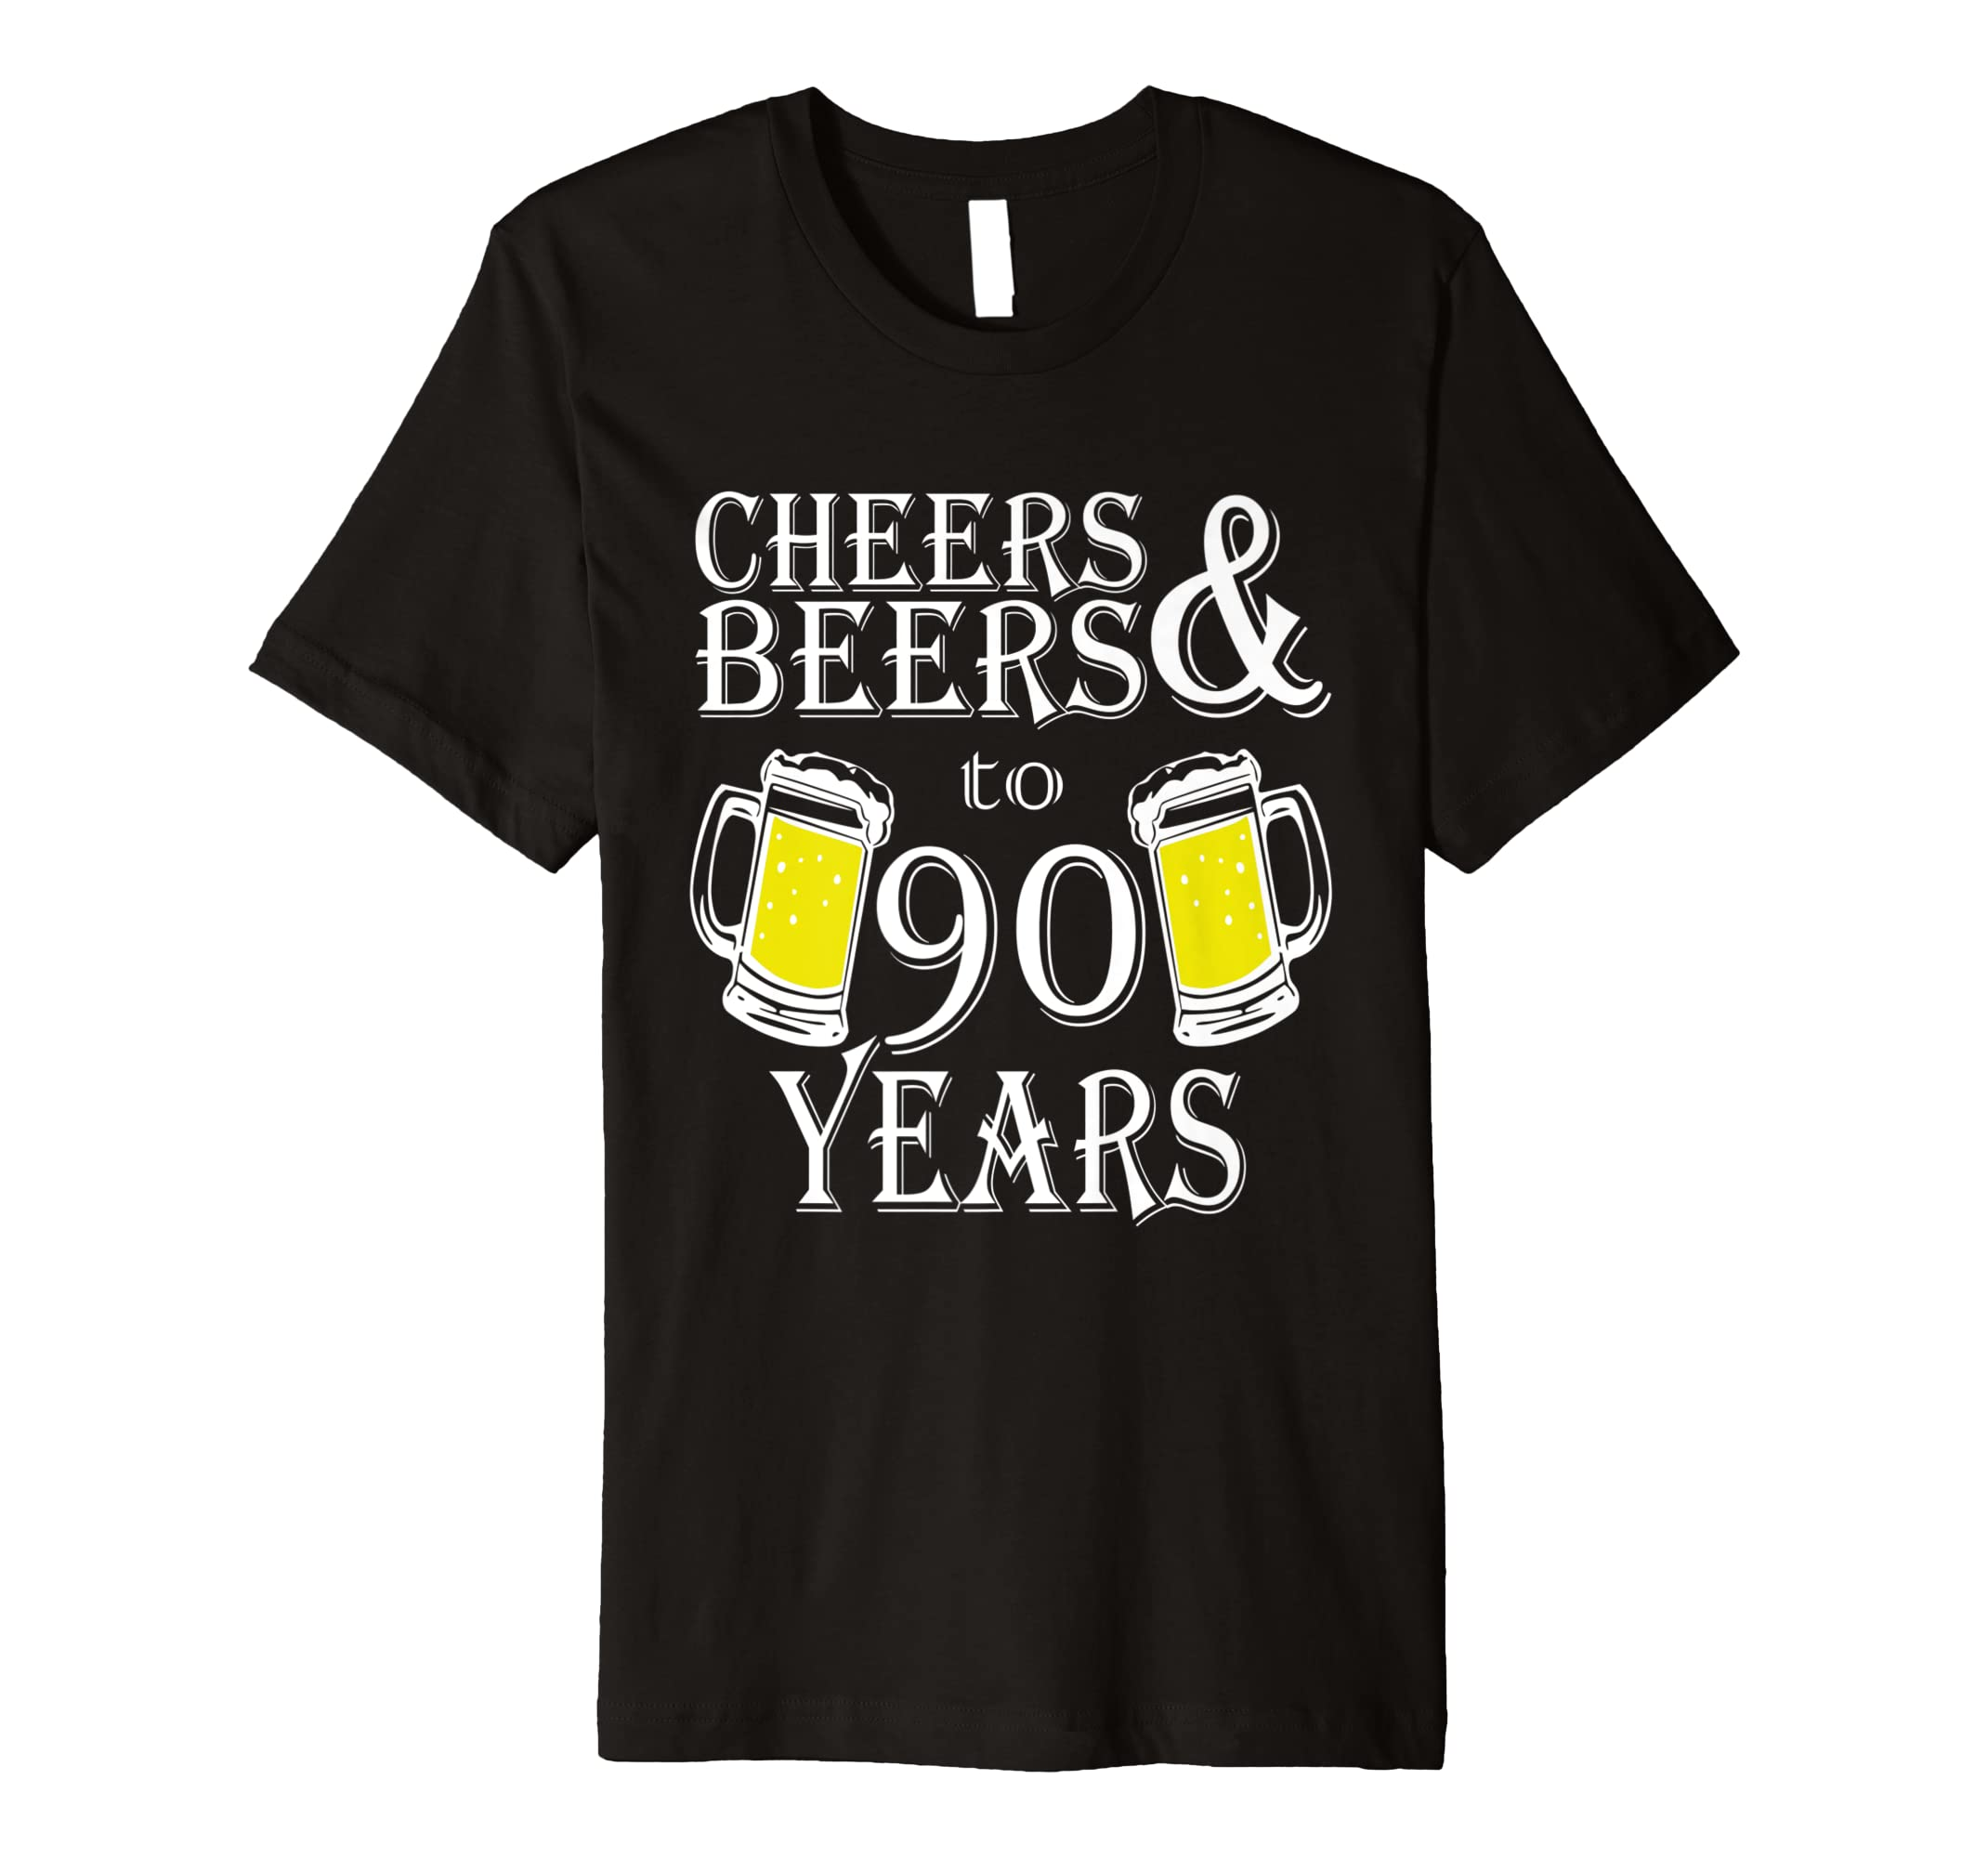 90th Birthday Vintage Made In 1928 Gift Ideas T Shirt Amazoncouk Clothing